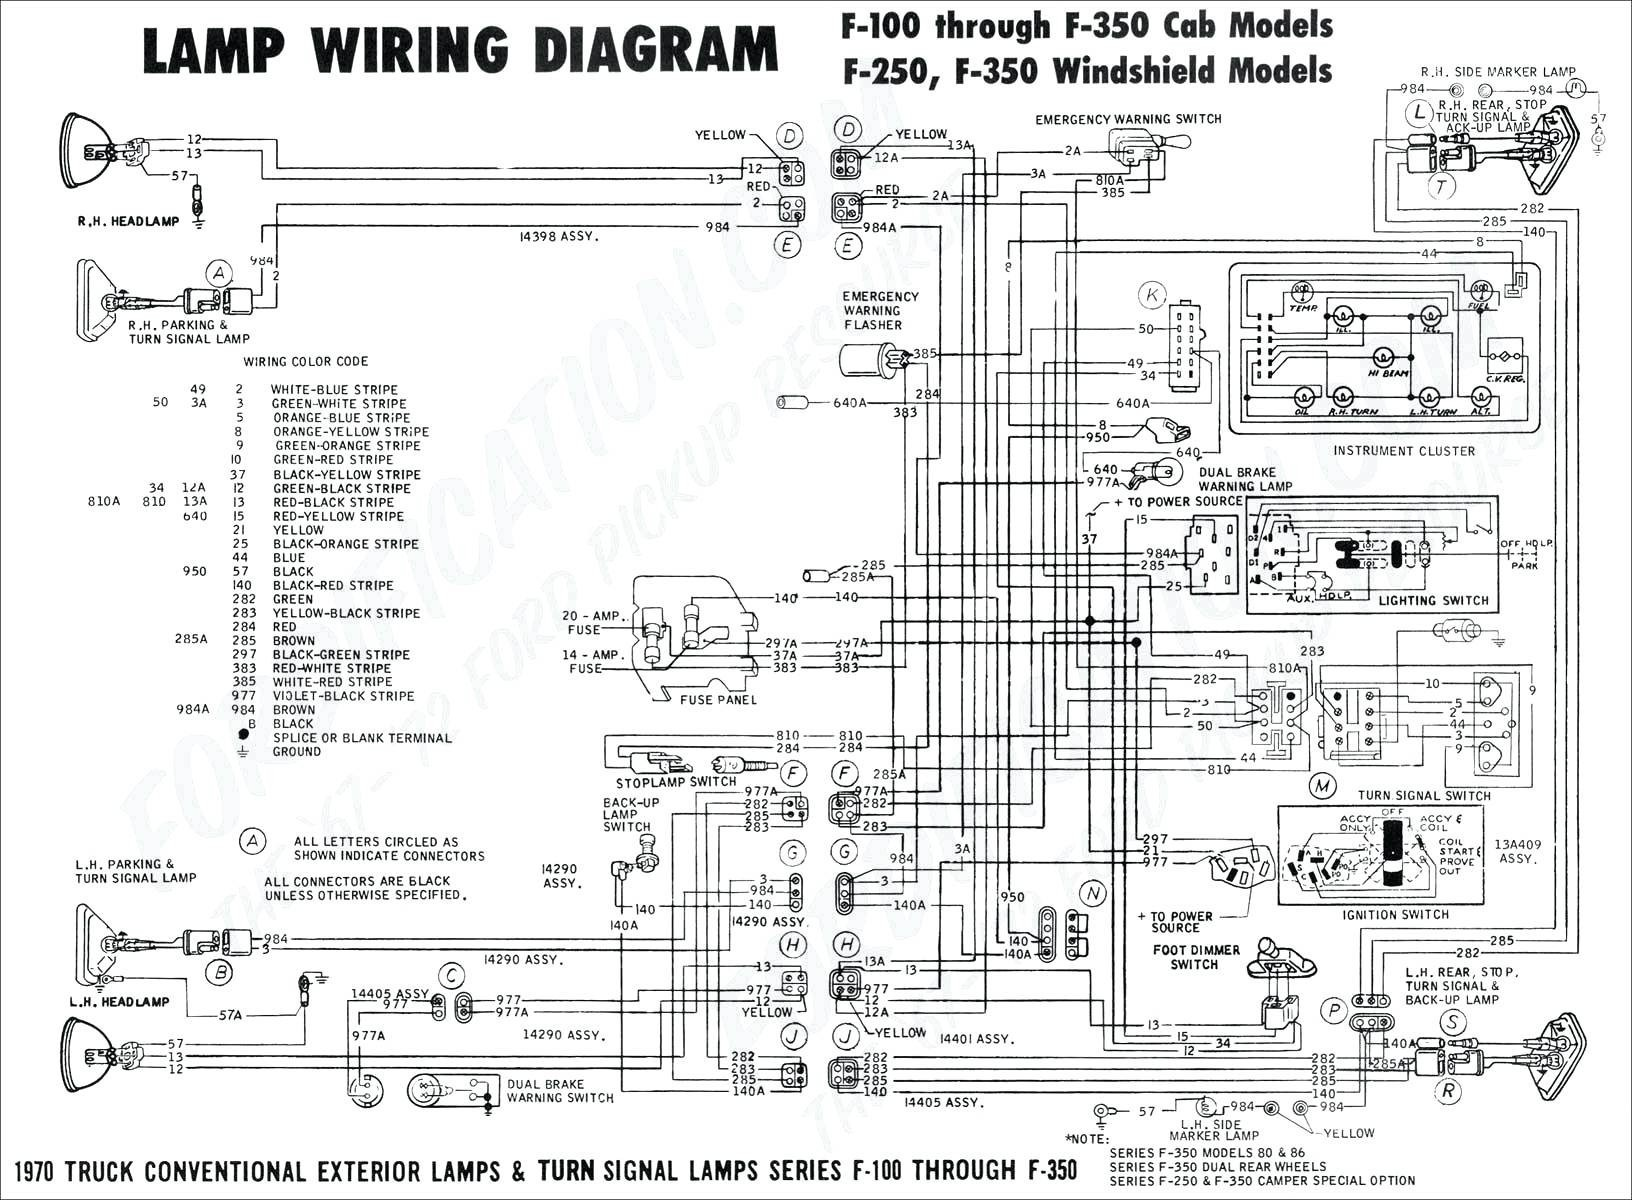 2009 ford Escape Engine Diagram 07 F250 Wiring Diagram Another Blog About Wiring Diagram • Of 2009 ford Escape Engine Diagram